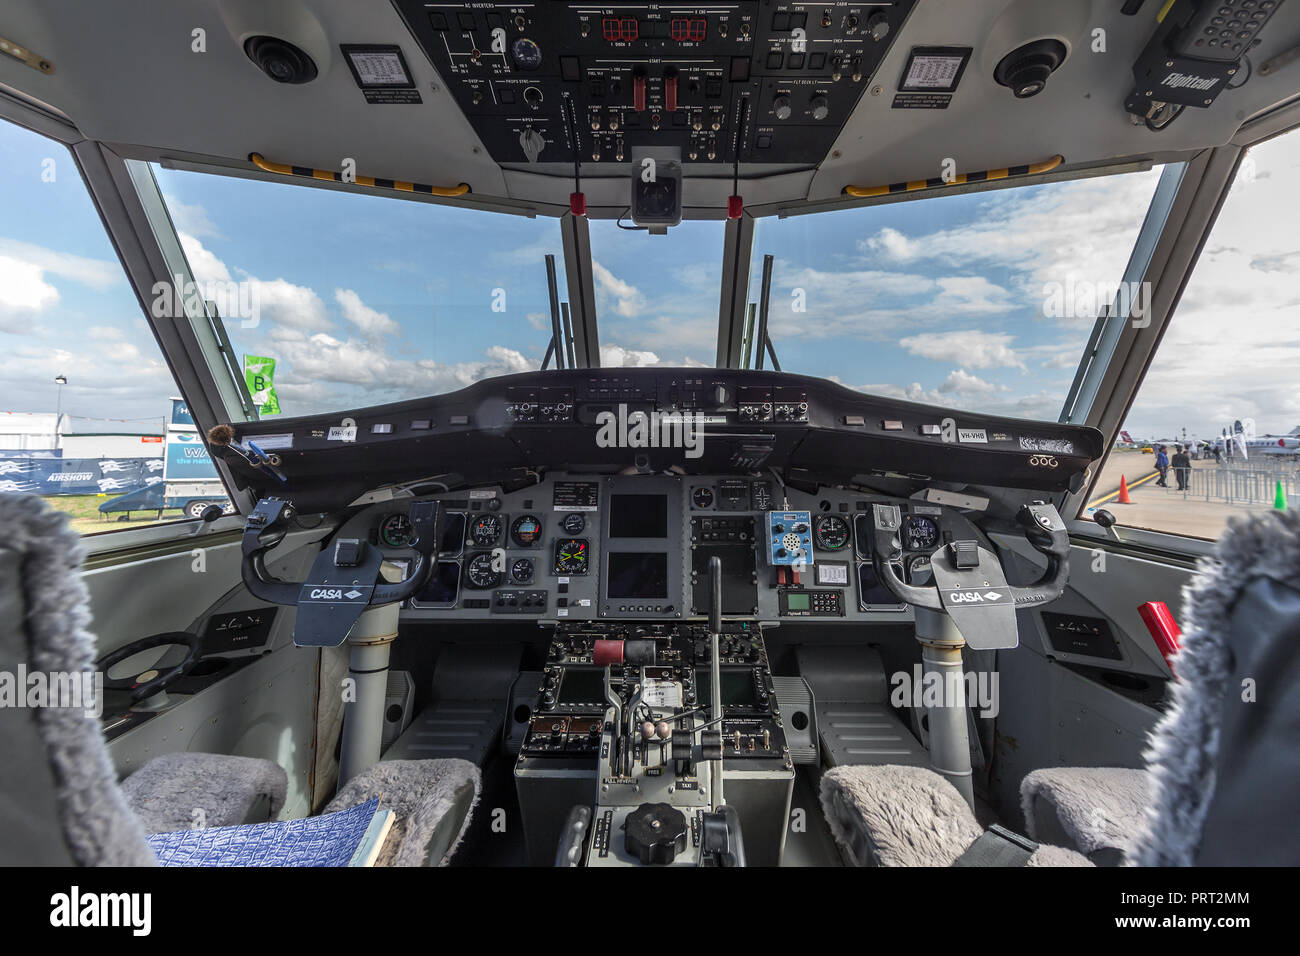 Cockpit of Casa C-212 twin engine transport aircraft VH-VHB operated by Sky Traders. - Stock Image